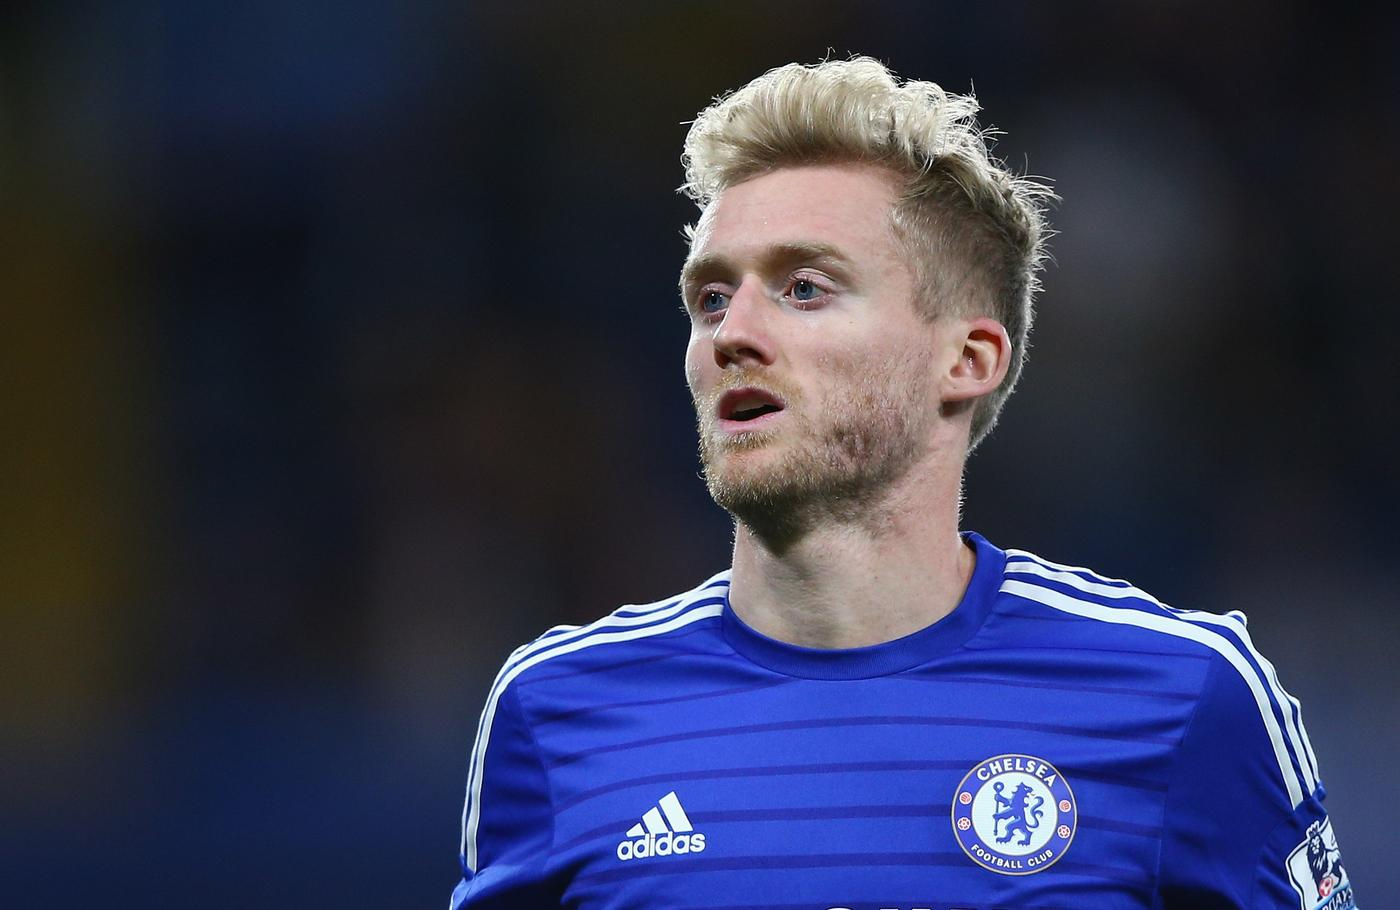 Wolfsburg deny interest in January transfer window deal for Chelsea outcast Andre Schurrle